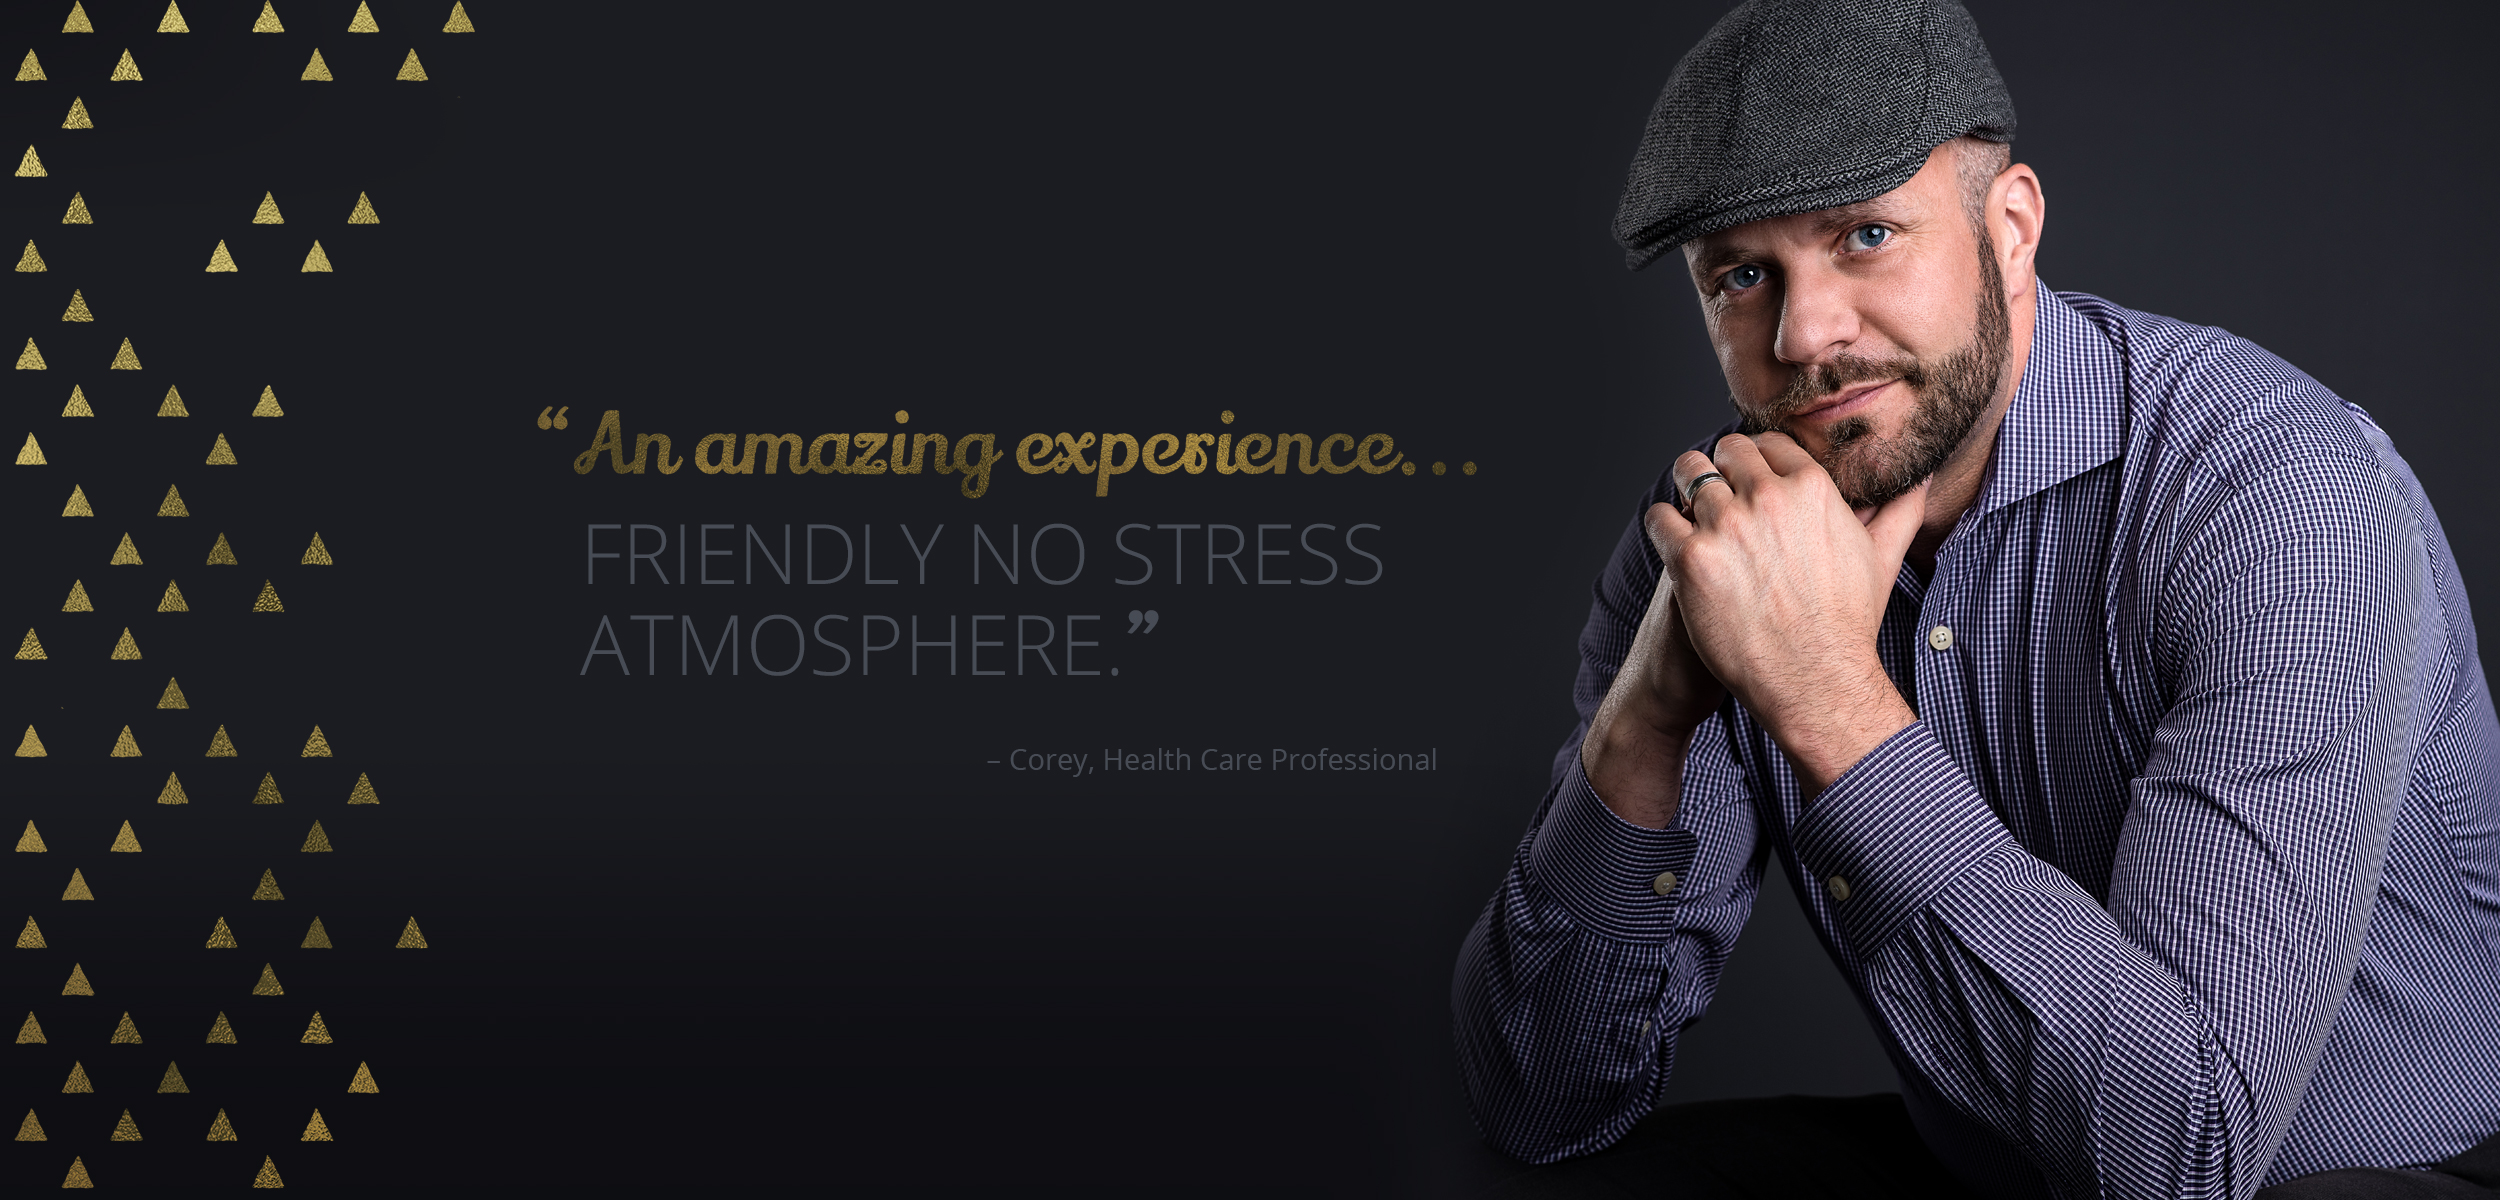 """Portrait Photography by Kelly Skinner of Friday Design + Photography """"An amazing experience... friendly no stress atmosphere."""" - Corey, Health Care Professional"""